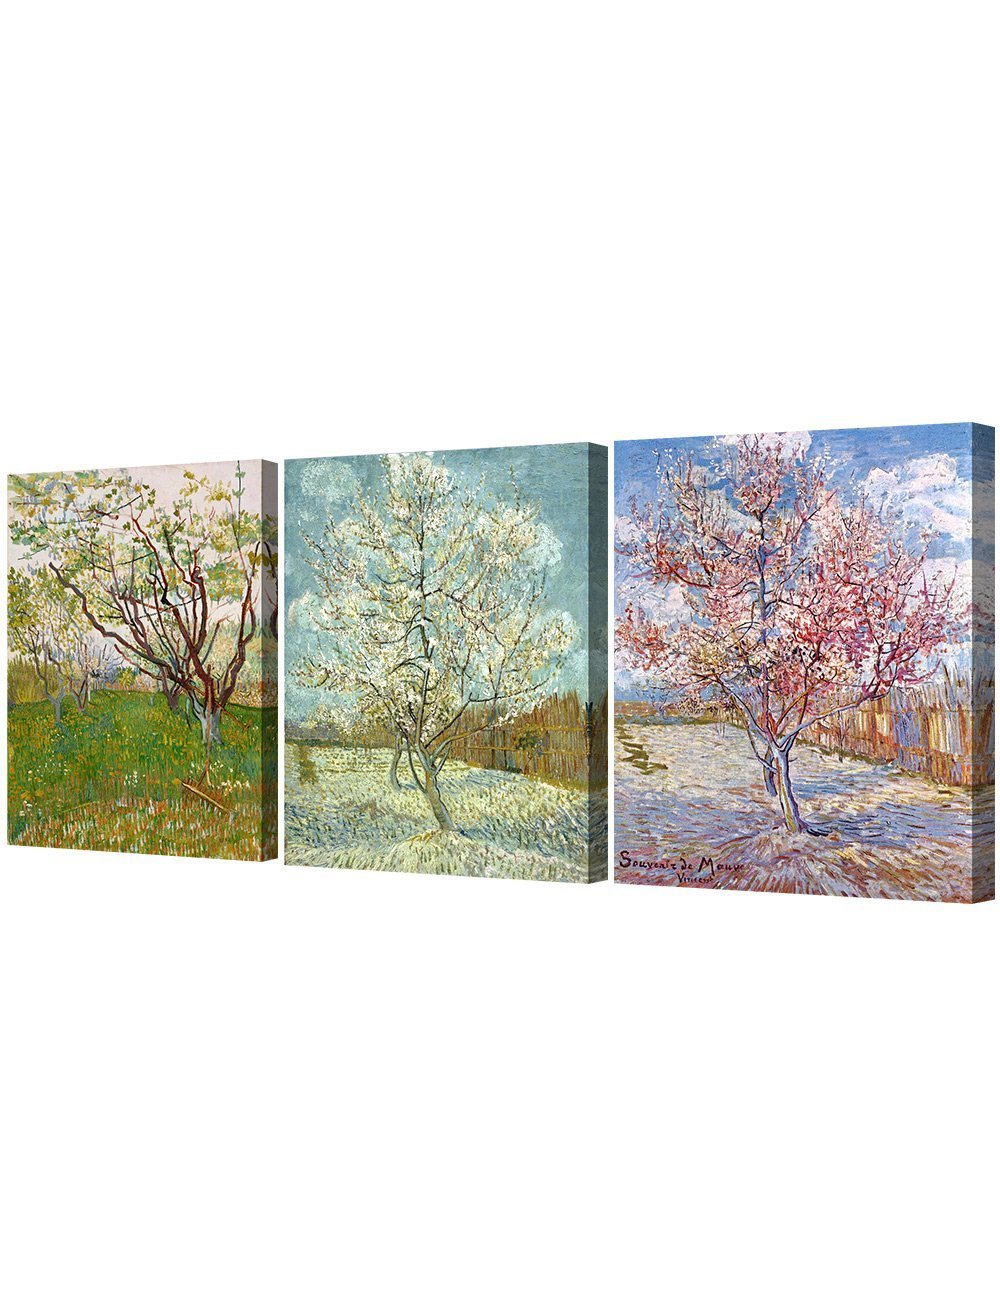 DecorArts Triptych Orchard Blossom Reproduction Image 1